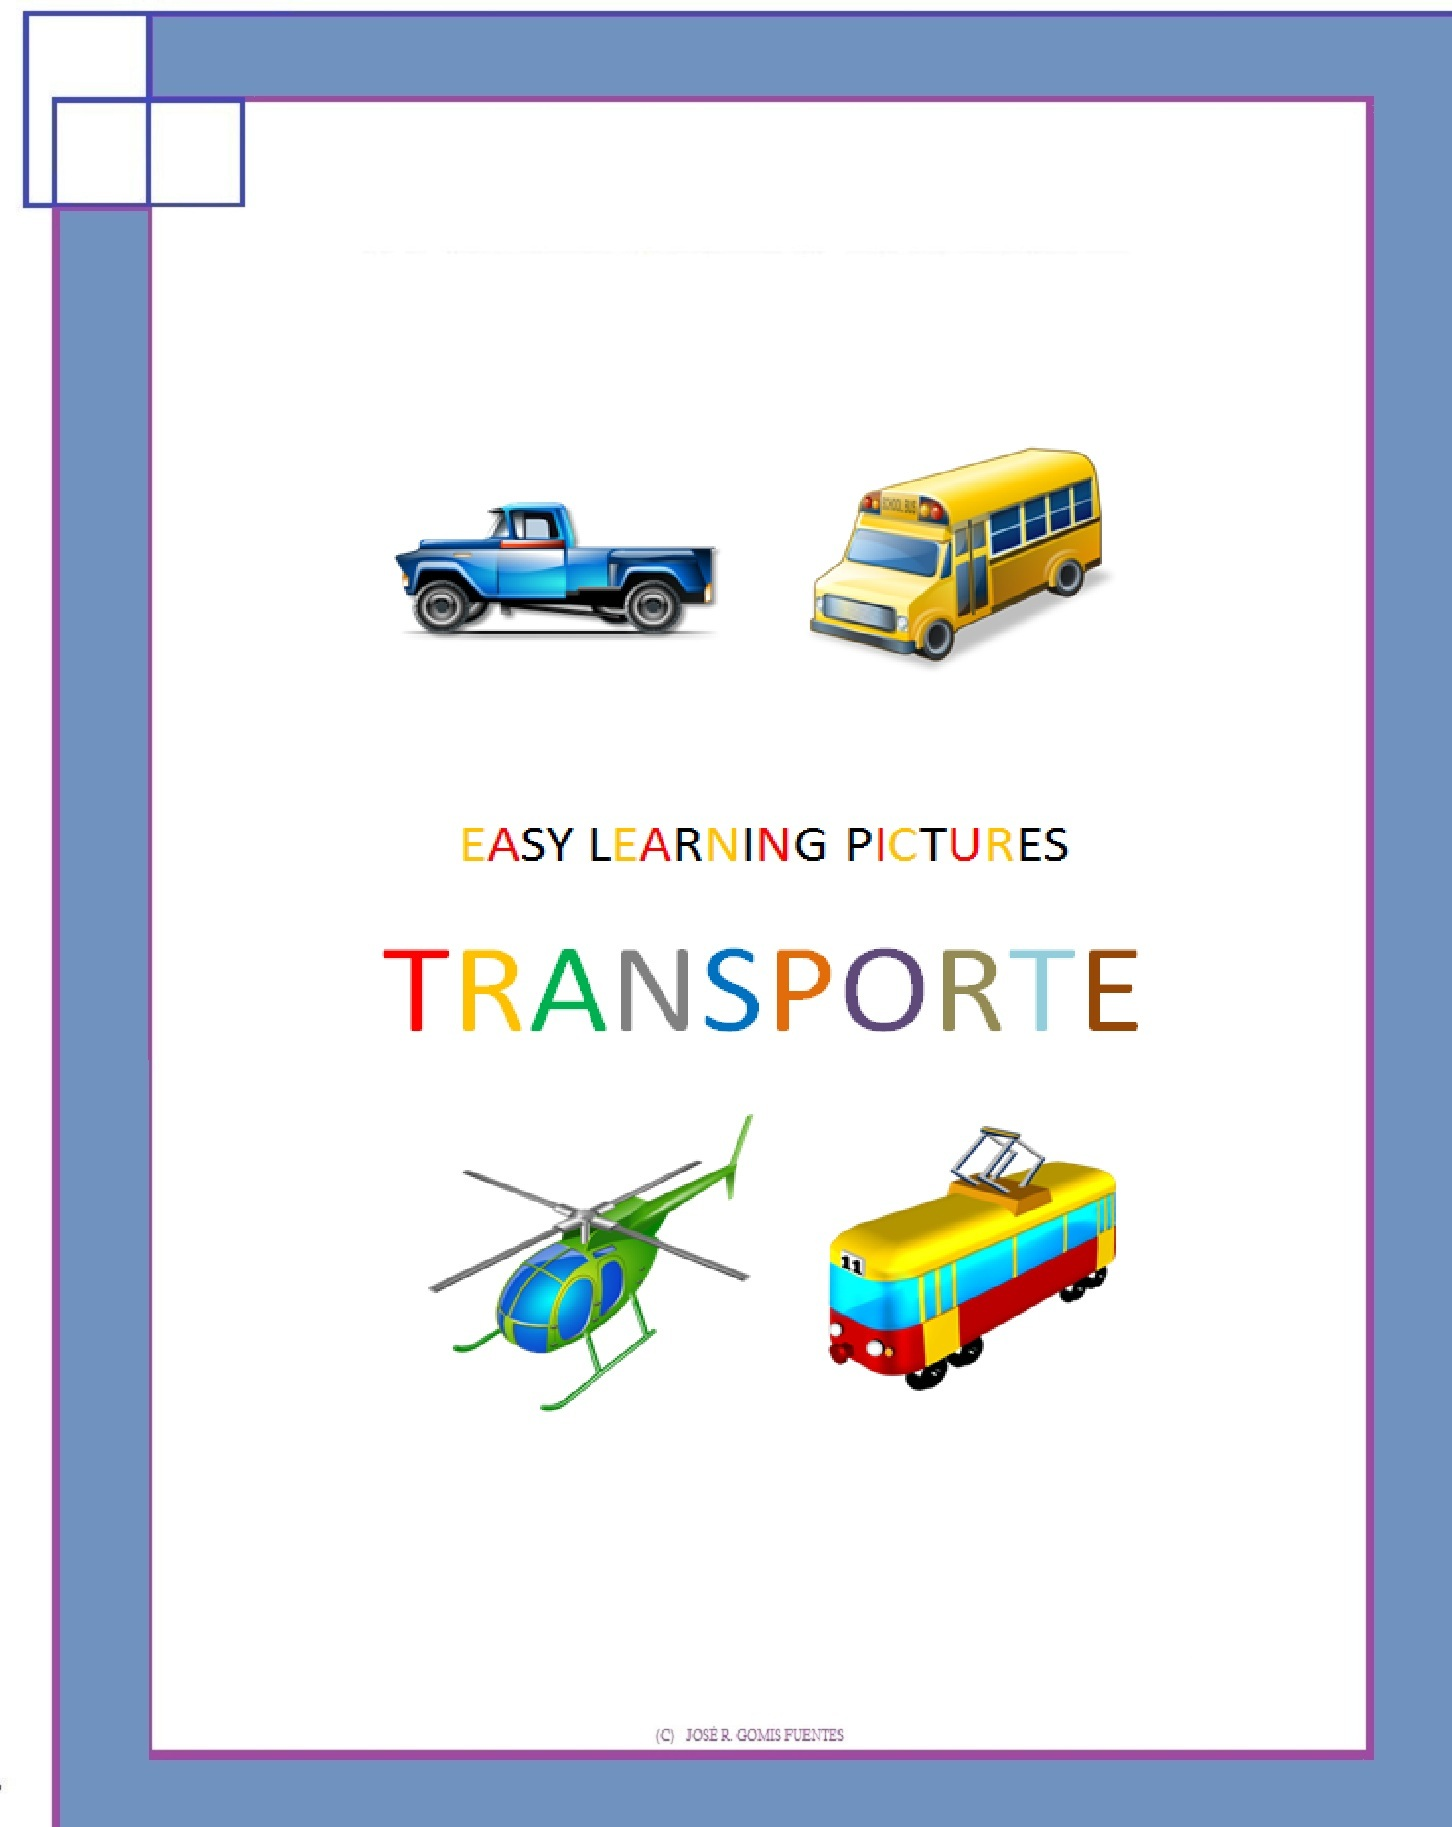 Easy Learning Pictures. Transporte